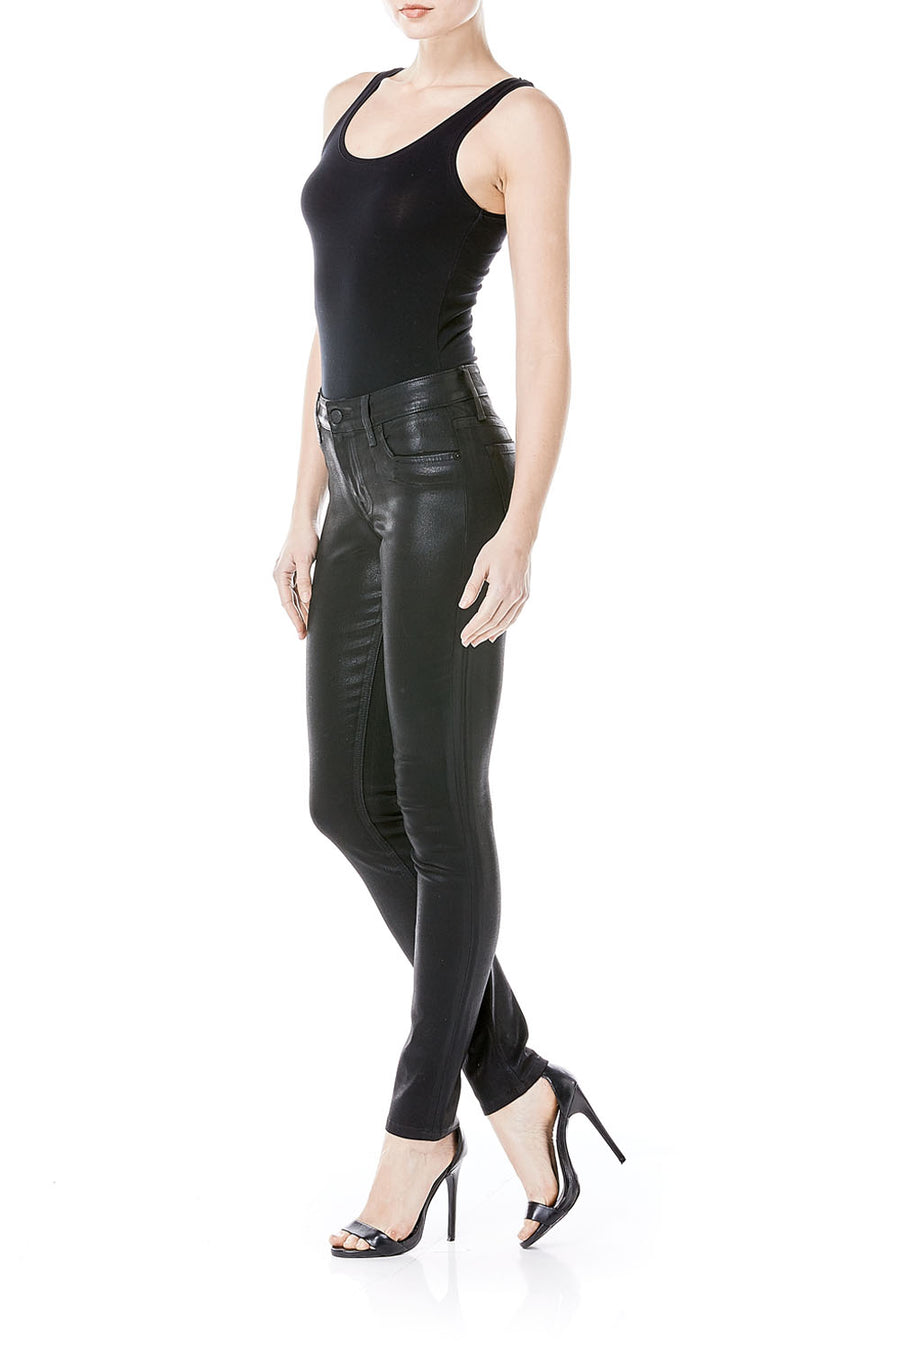 Liza Black Coated Faux Leather Skinny - level99jeans